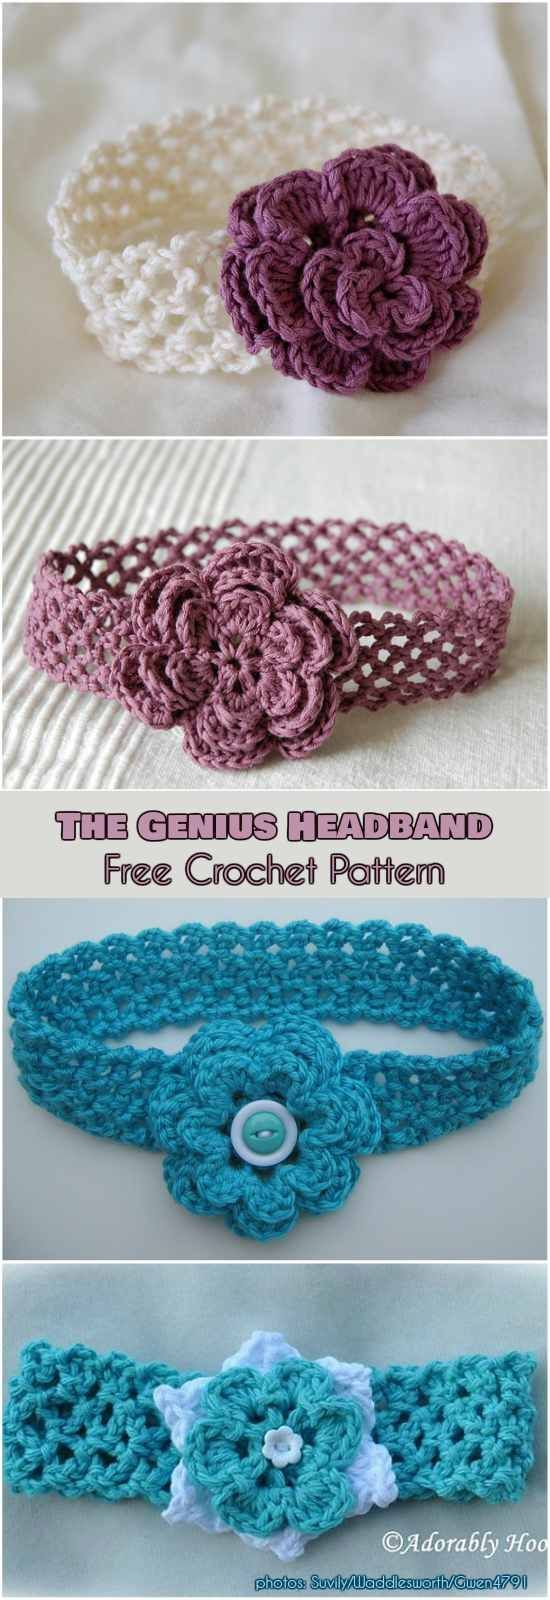 The Genius Headband with Flower Free Pattern